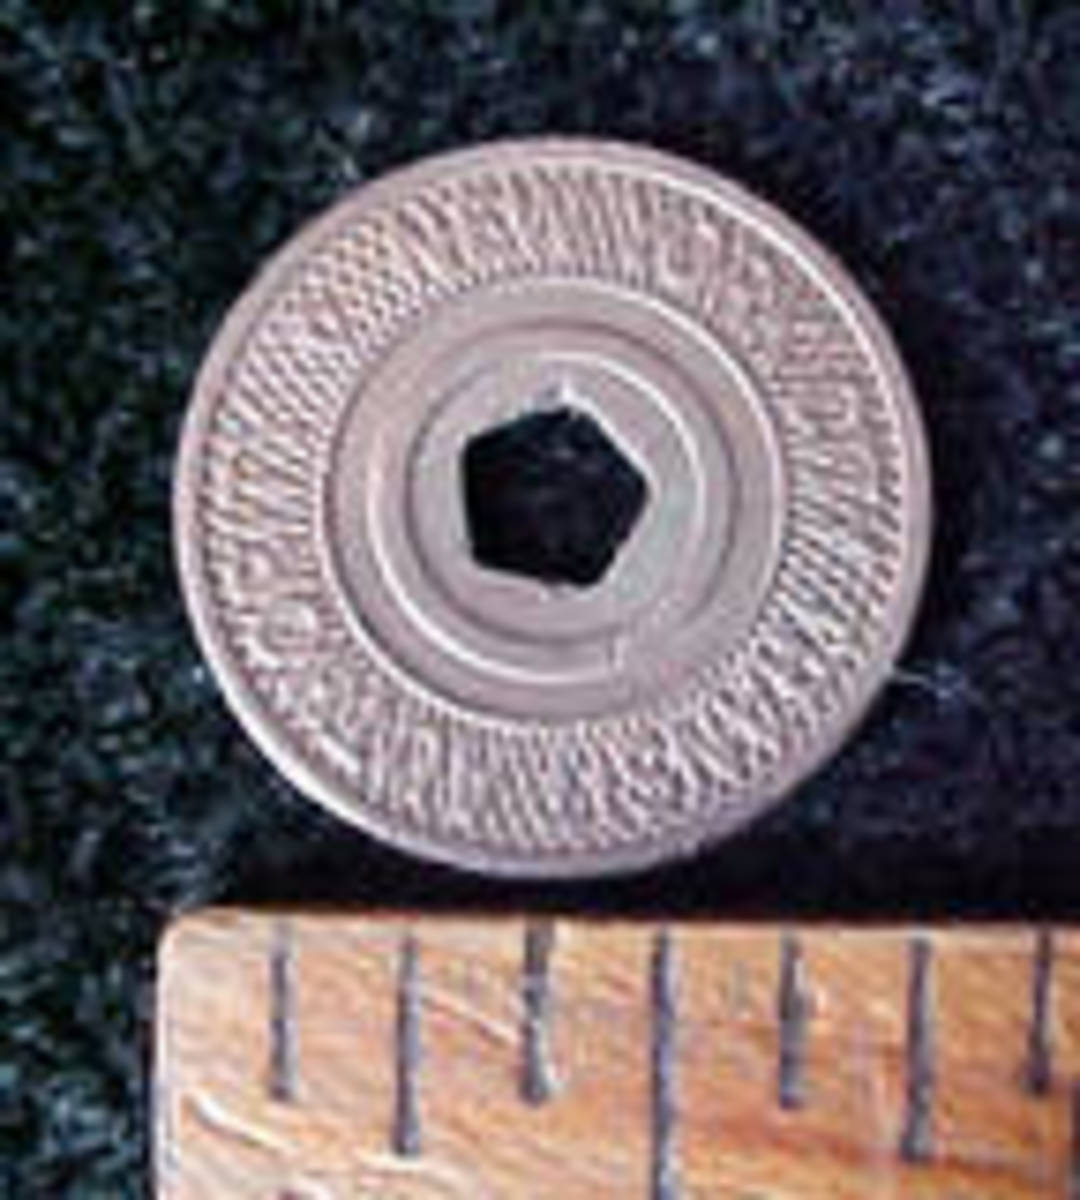 This is an example of the last NYC token.